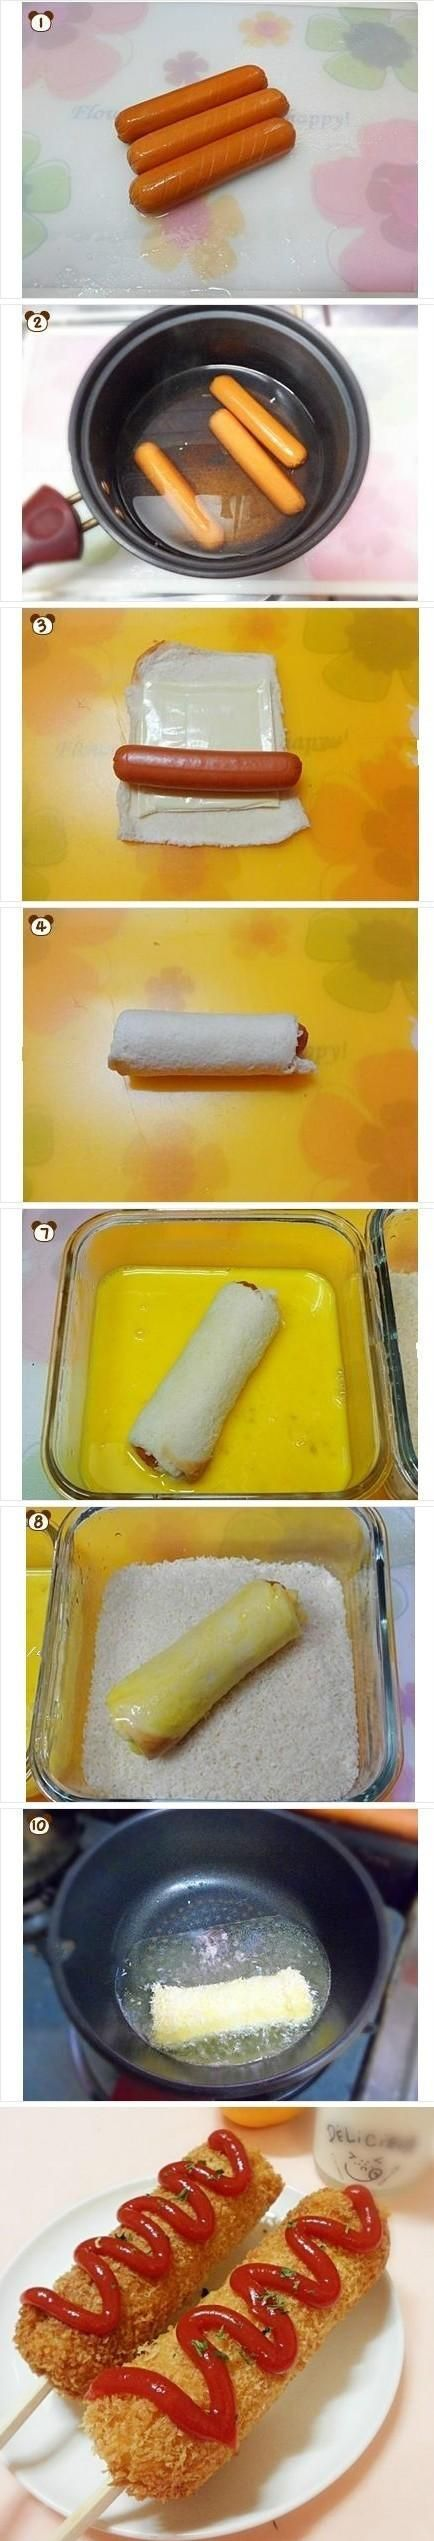 Different hot dog! Make several slices around hot dogs & then soak in hot water for 1-3 minutes. Roll/flatten bread squares, place cheese, then hot dog & roll up. Dip in the egg mixture & then roll in bread crumbs, pan fry until golden. Enter stick for corn-dog effect : )